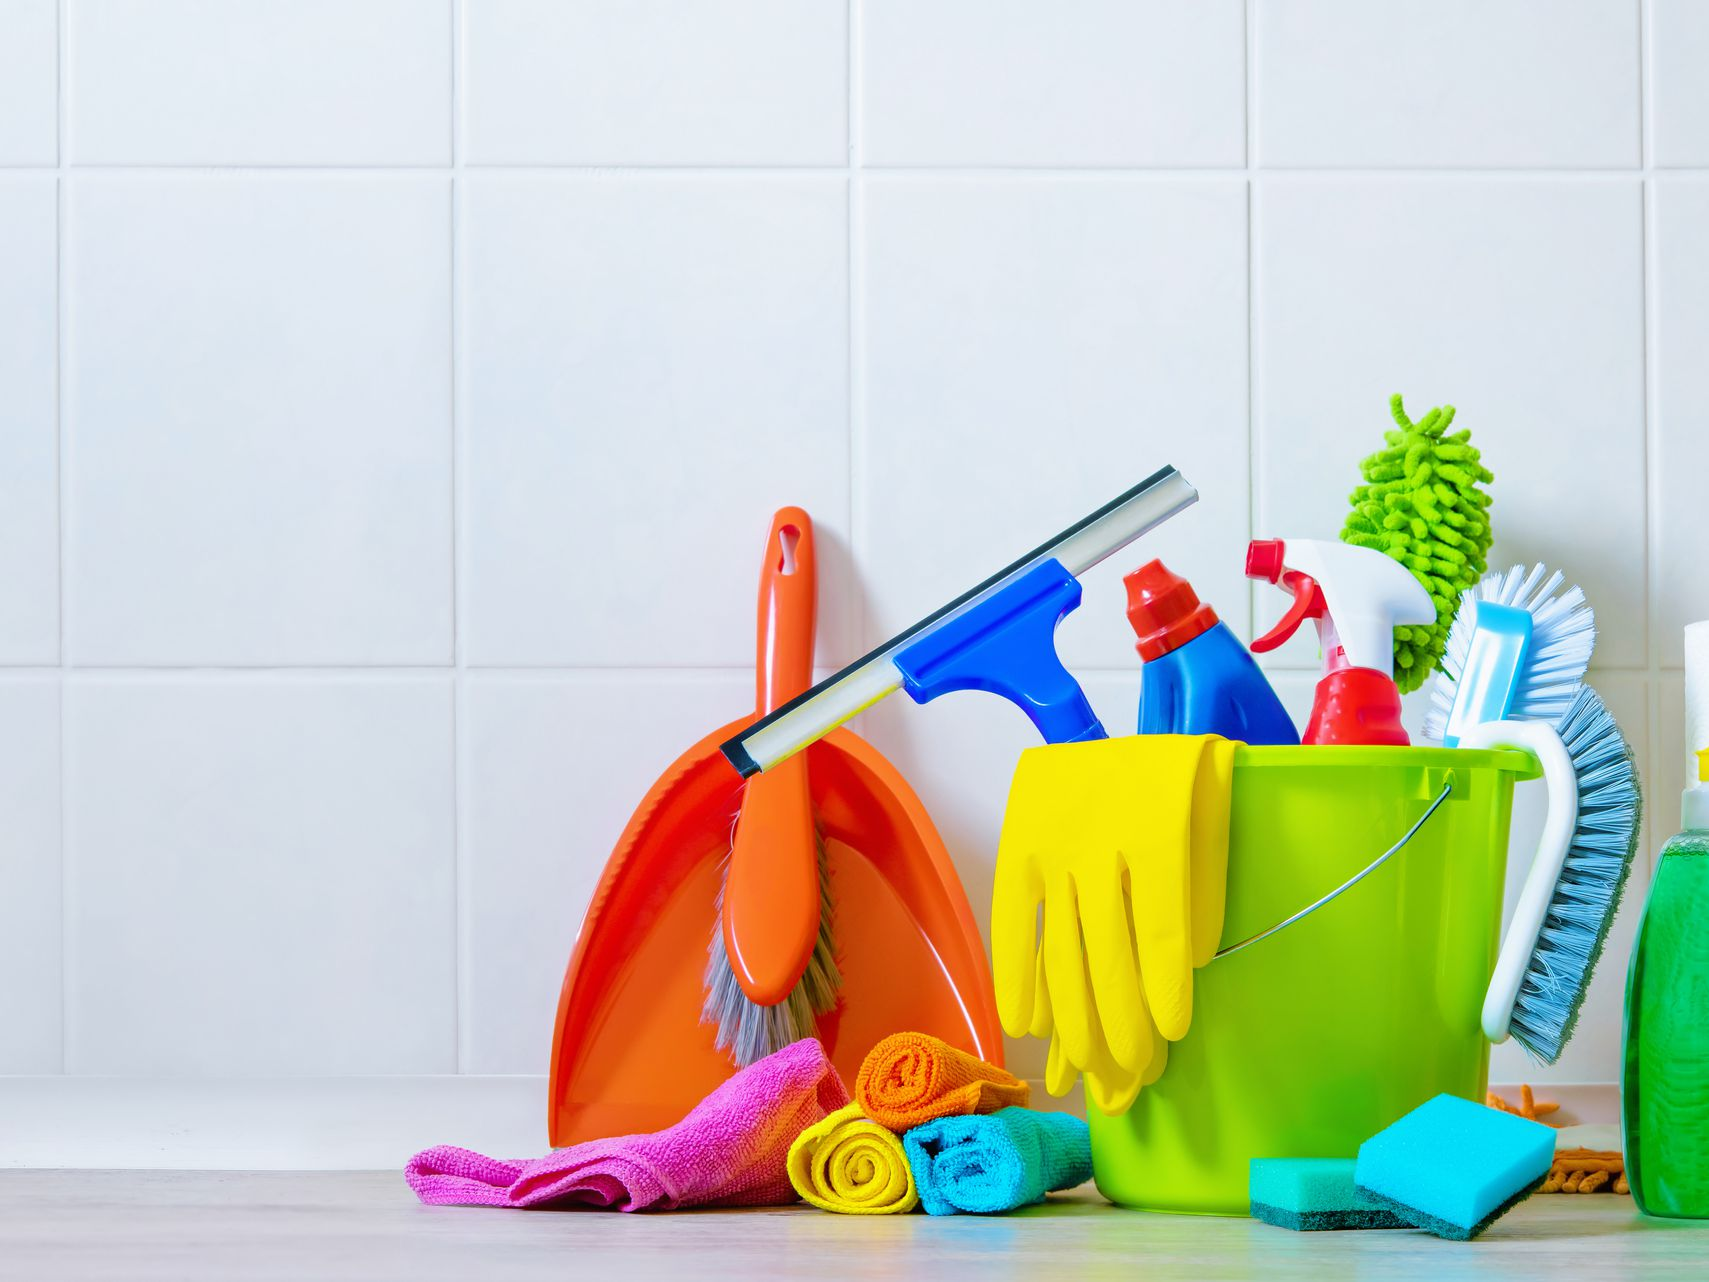 Excellent Reasons for Using Commercial Cleaning Supplies